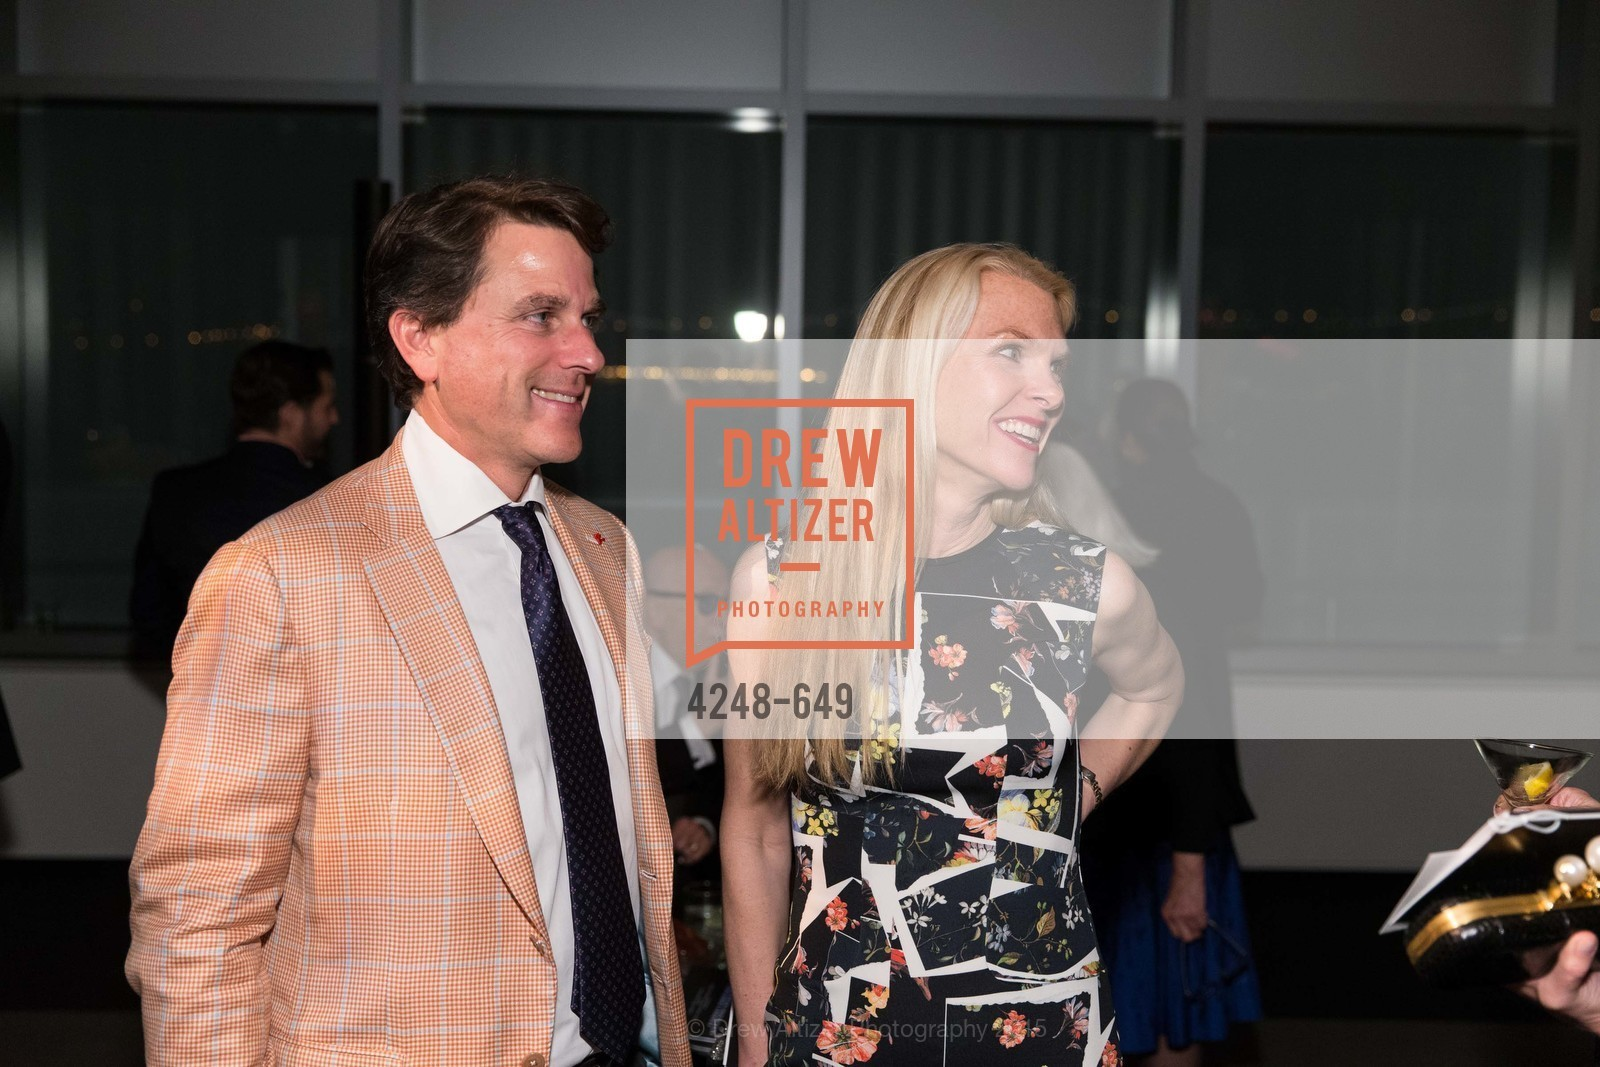 Gregory Malin, Linle Froeb, Fashion Forward: An Evening with Erdem presented by SF Opera Guild and Saks Fifth Avenue, Pier 27. Pier 27, The Embarcadero, March 25th, 2015,Drew Altizer, Drew Altizer Photography, full-service agency, private events, San Francisco photographer, photographer california